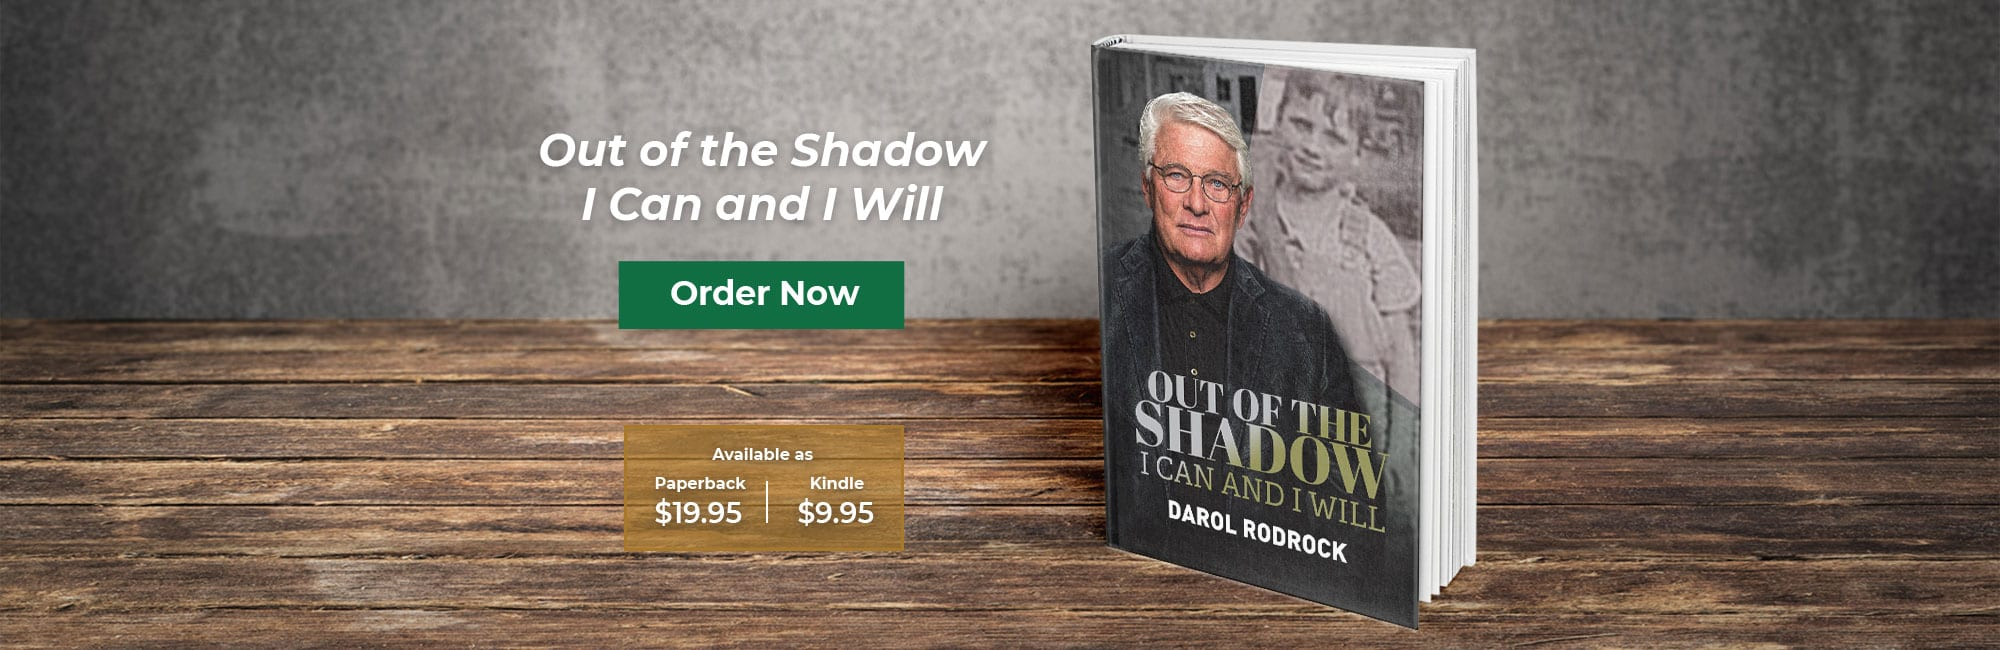 Darol Rodrock Book Out Of The Shadows